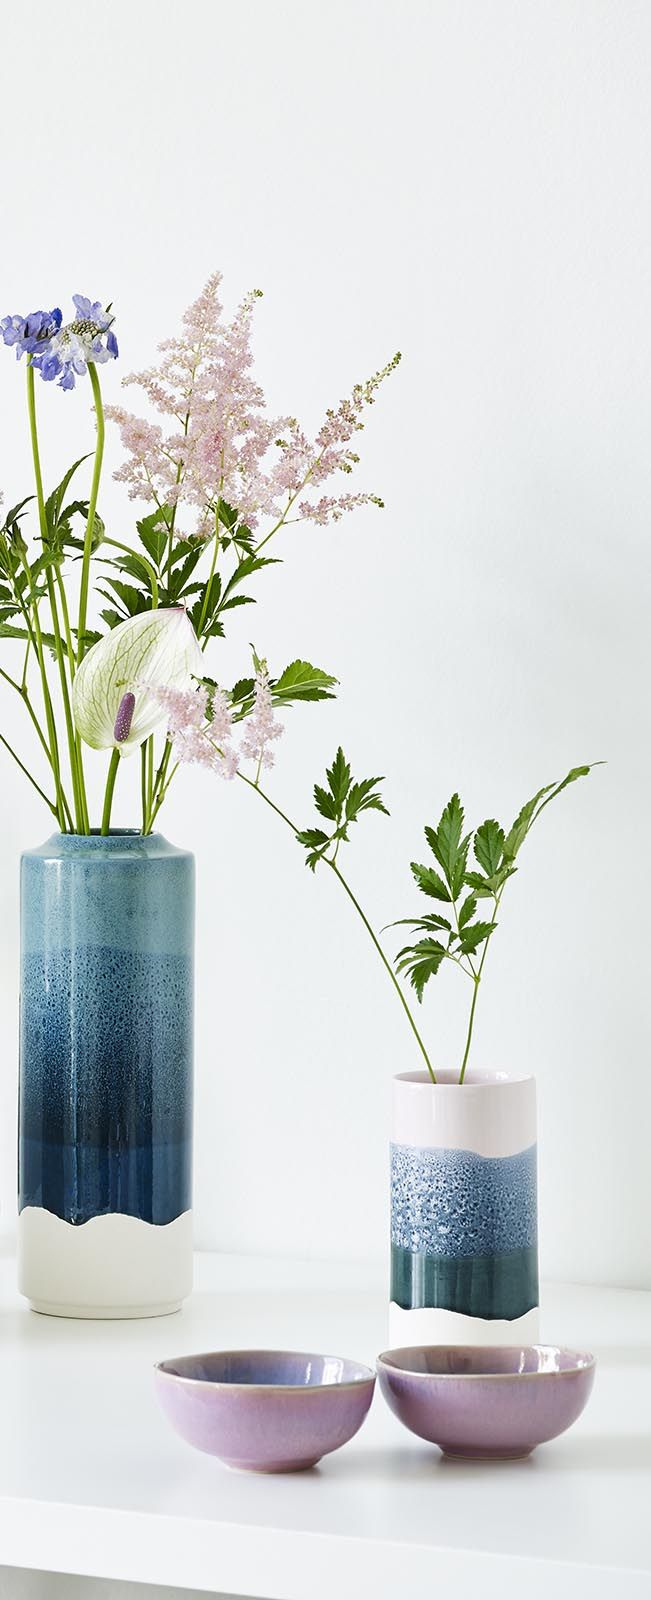 Let your blooms blossom in this artistic Isabela Tall Ceramic Vase.